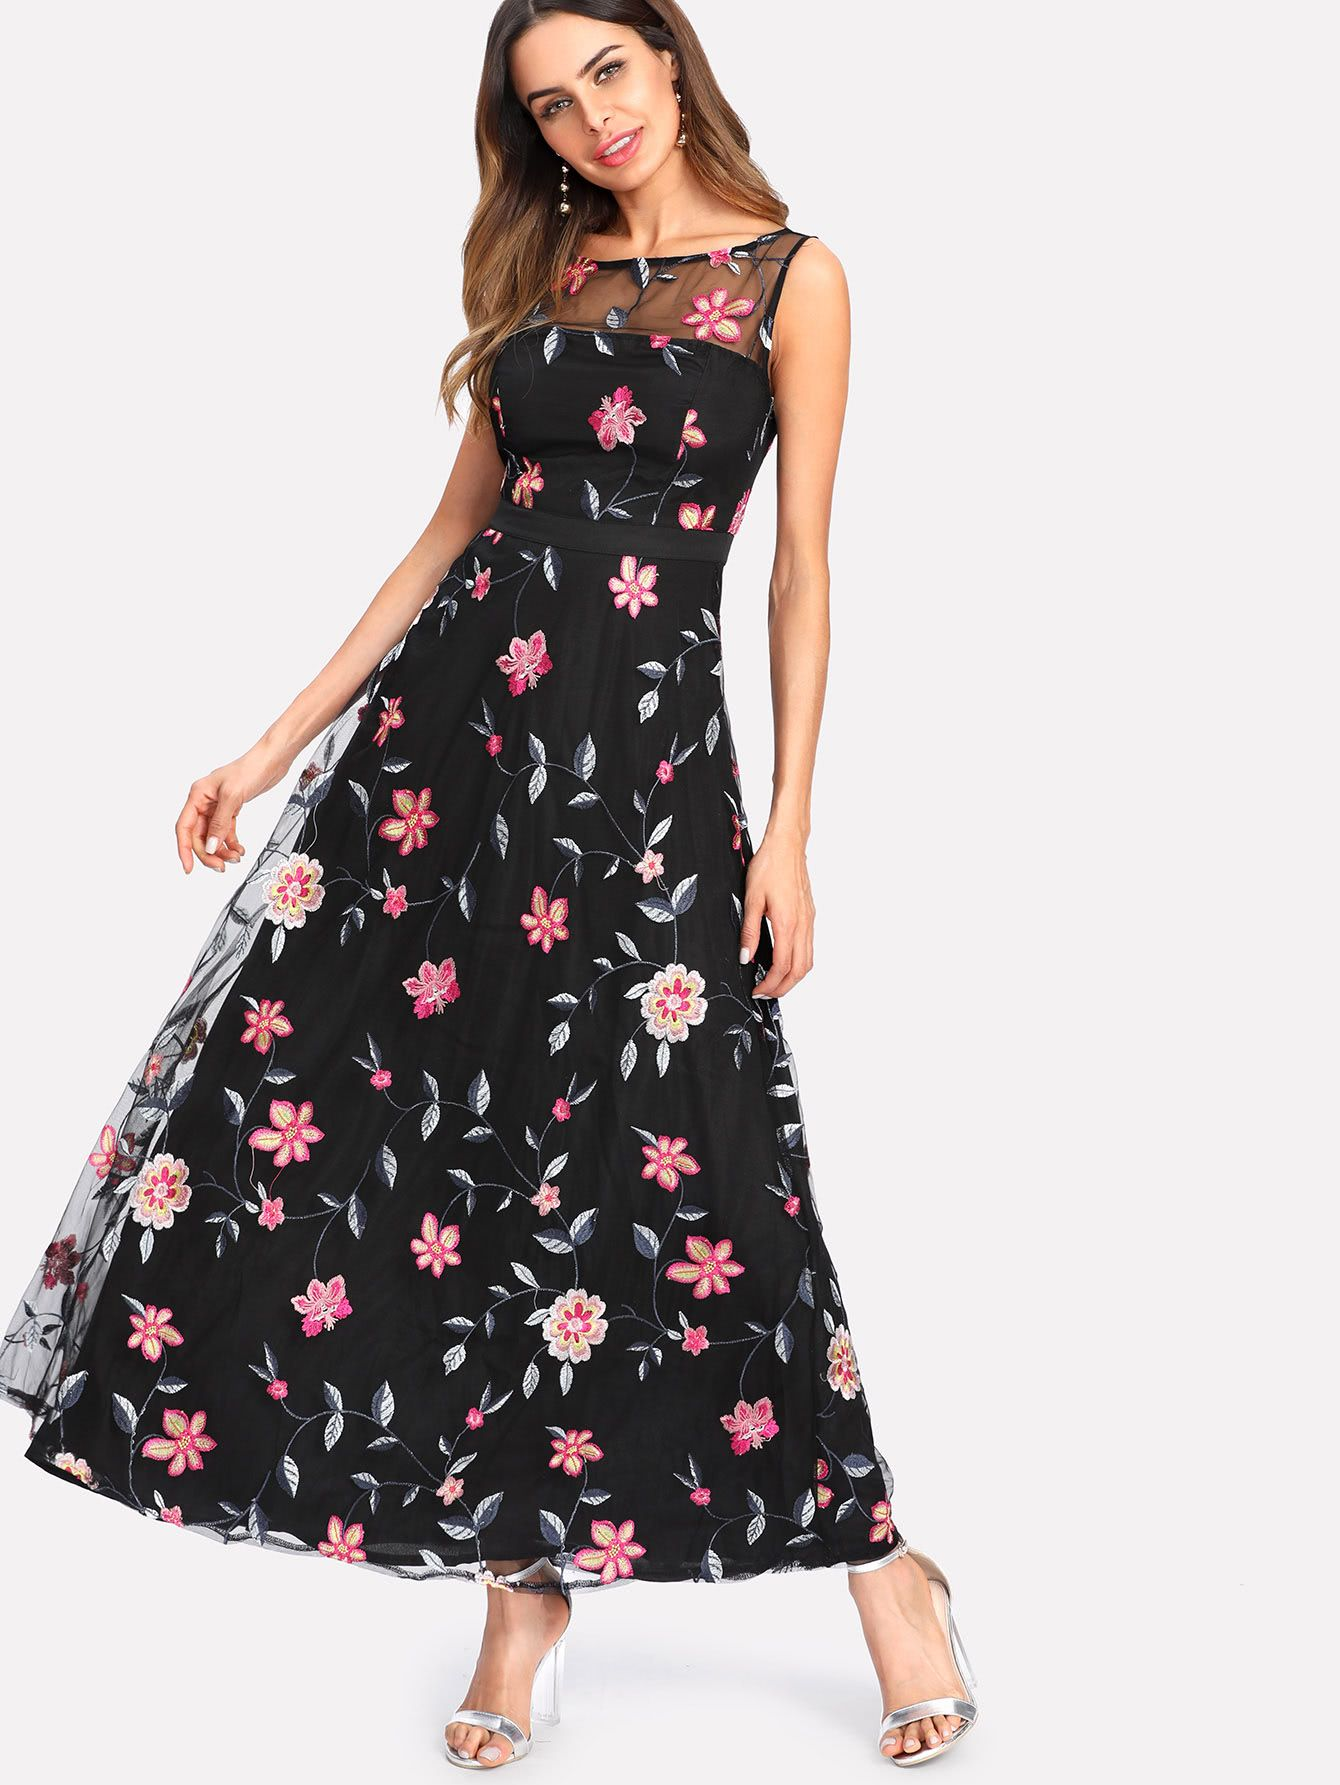 aea2da1608 Shop Embroidery Mesh Overlay Flowy Dress online. SheIn offers Embroidery  Mesh Overlay Flowy Dress & more to fit your fashionable needs.